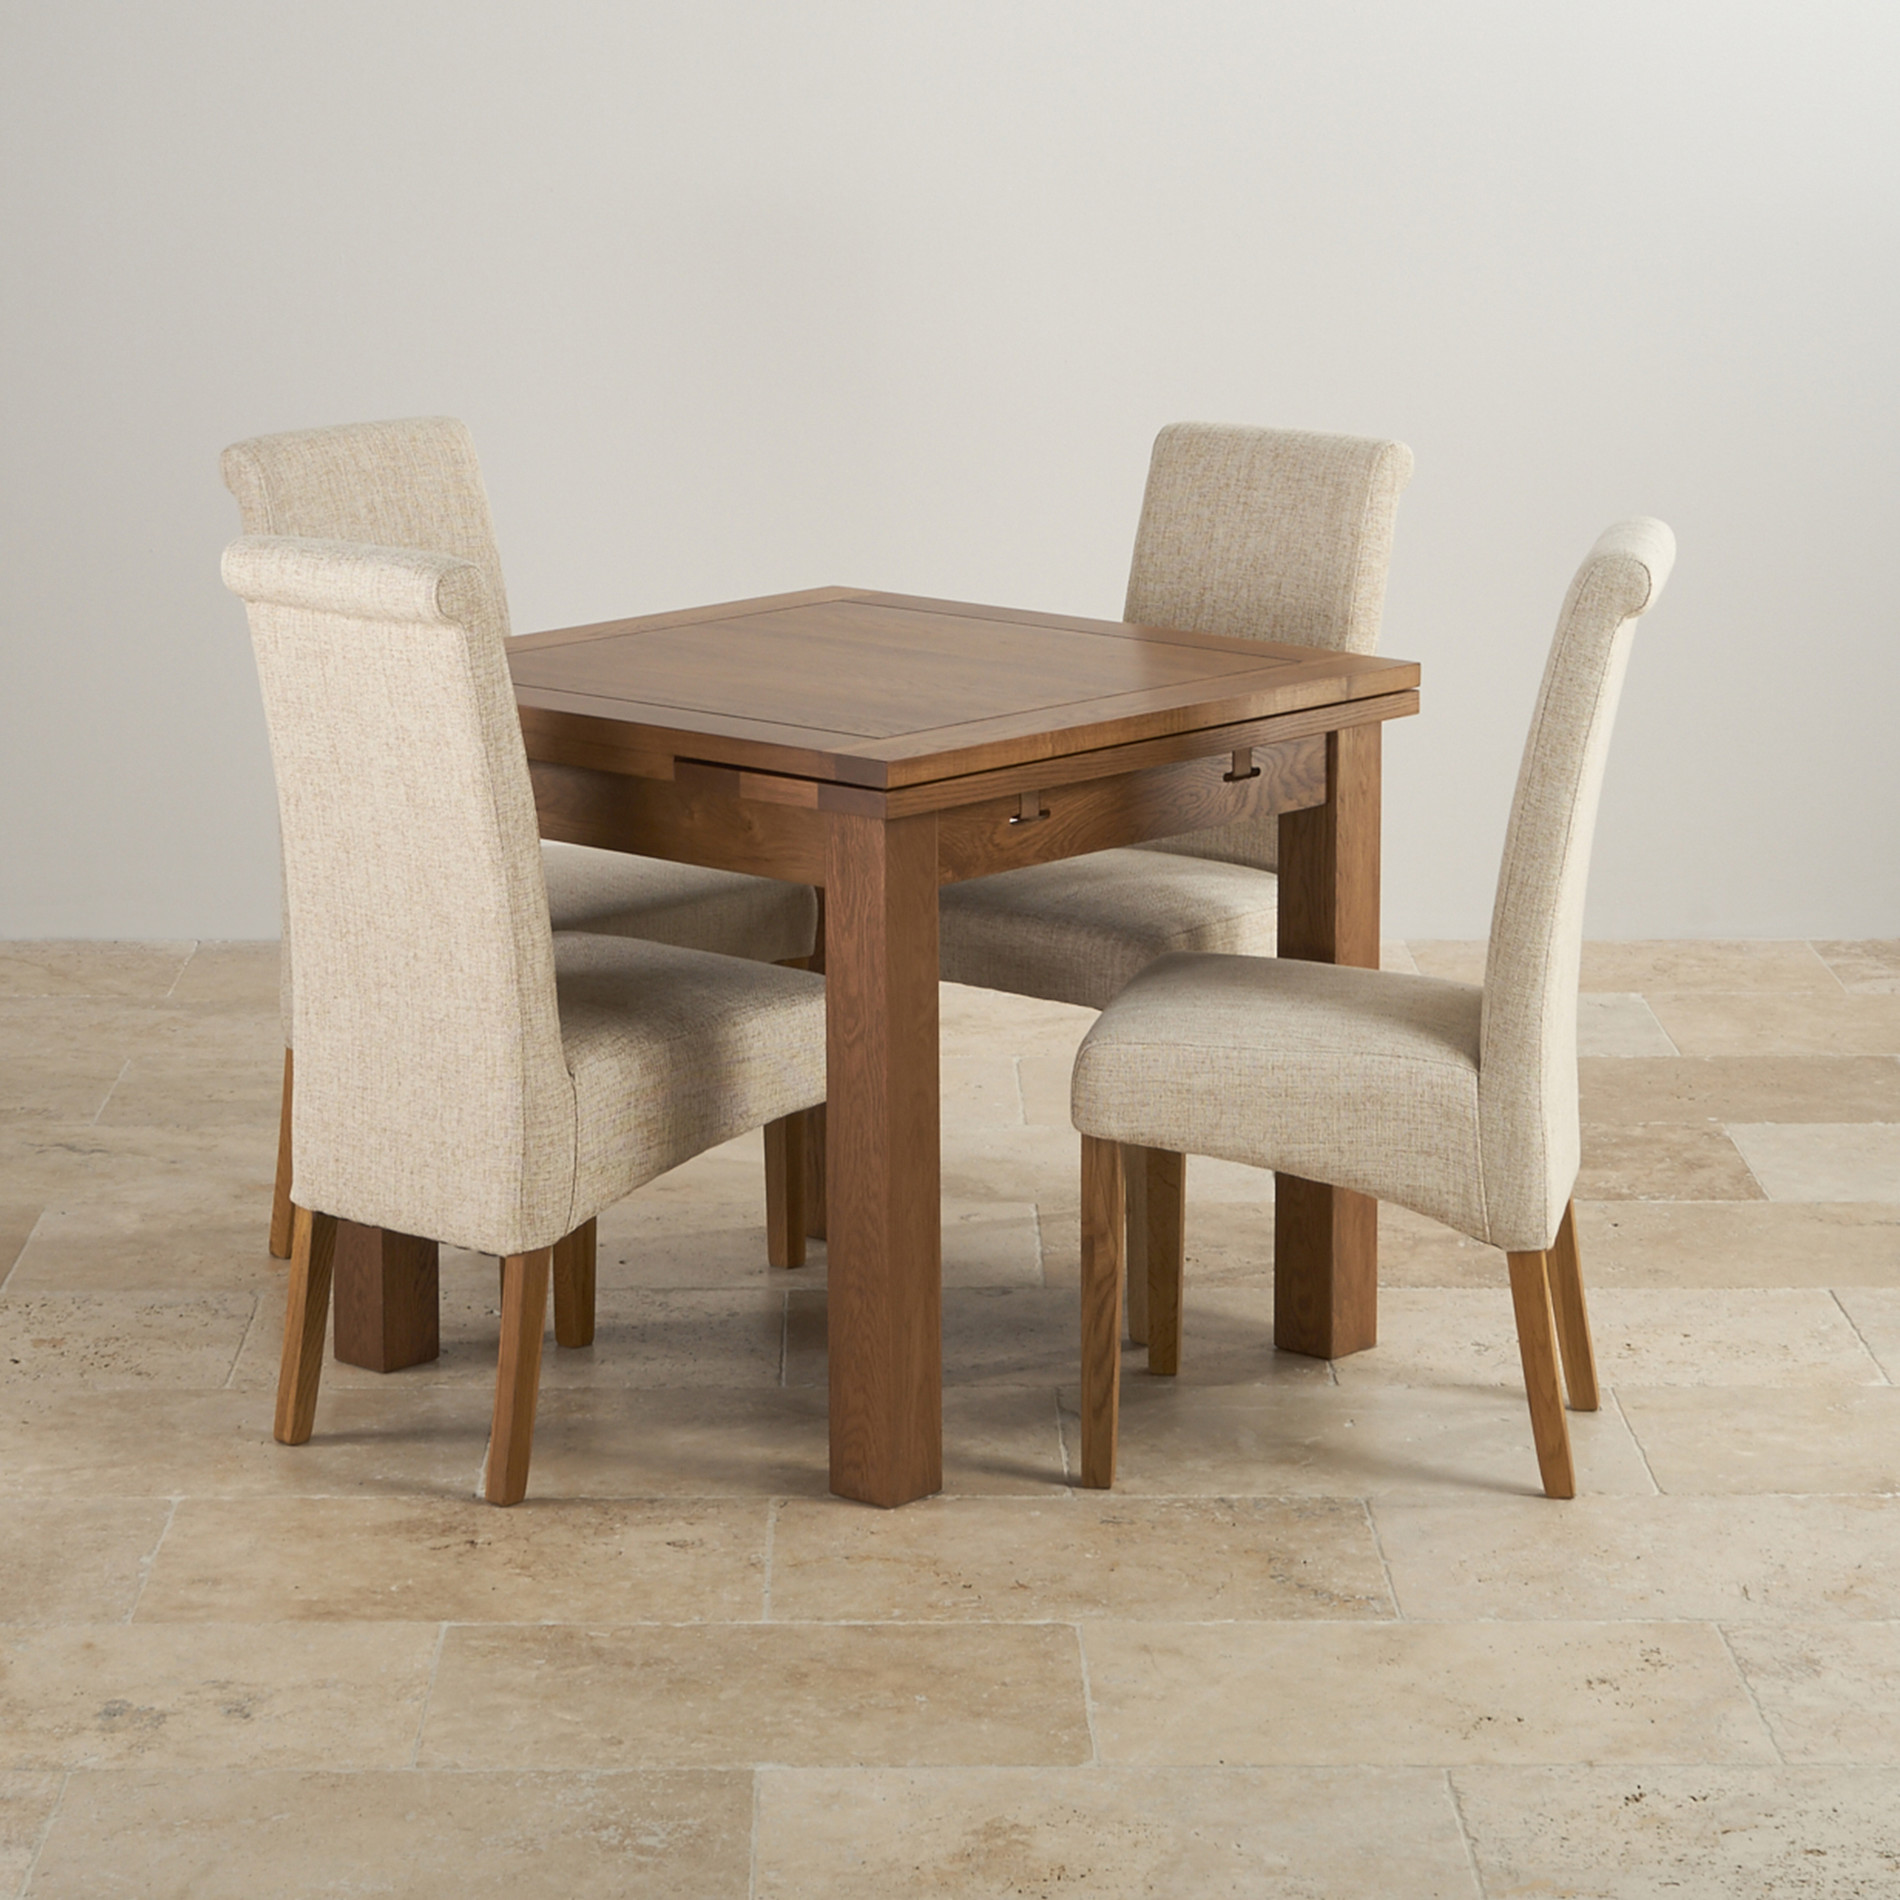 3ft Table With 4 Beige Chairs: Extending Dining Table In Rustic Oak With 4 Beige Fabric